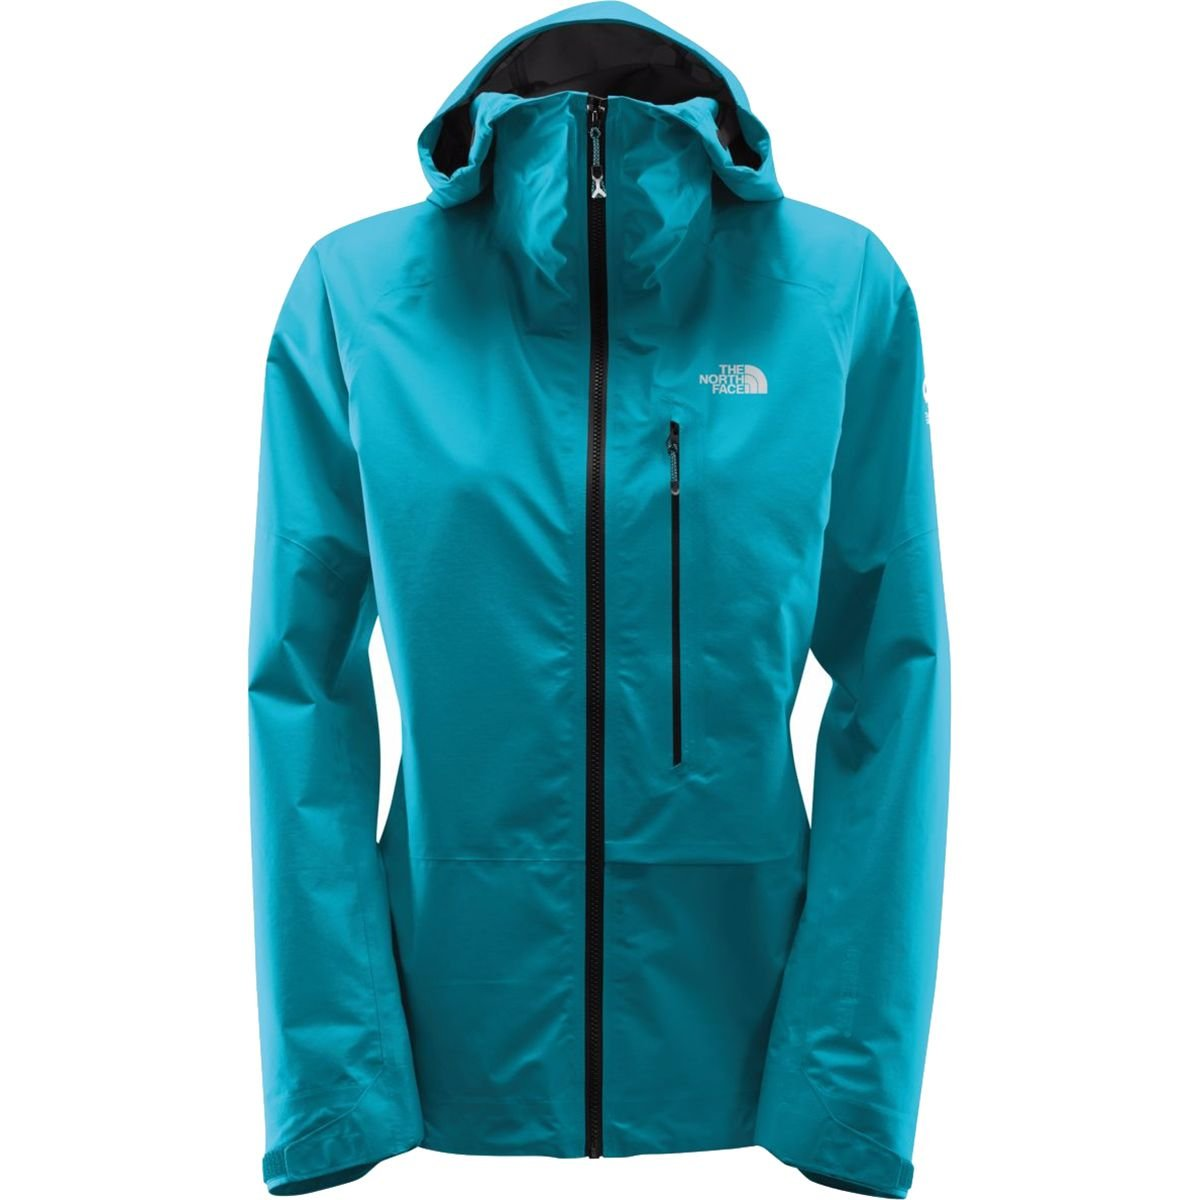 (ザノースフェイス) The North Face Summit L5 Proprius GTX Active Hooded Jacket Women's メンズ ジャケットBluebird [並行輸入品] B076WZPGCM 日本サイズ LL (US L)|Bluebird Bluebird 日本サイズ LL (US L)